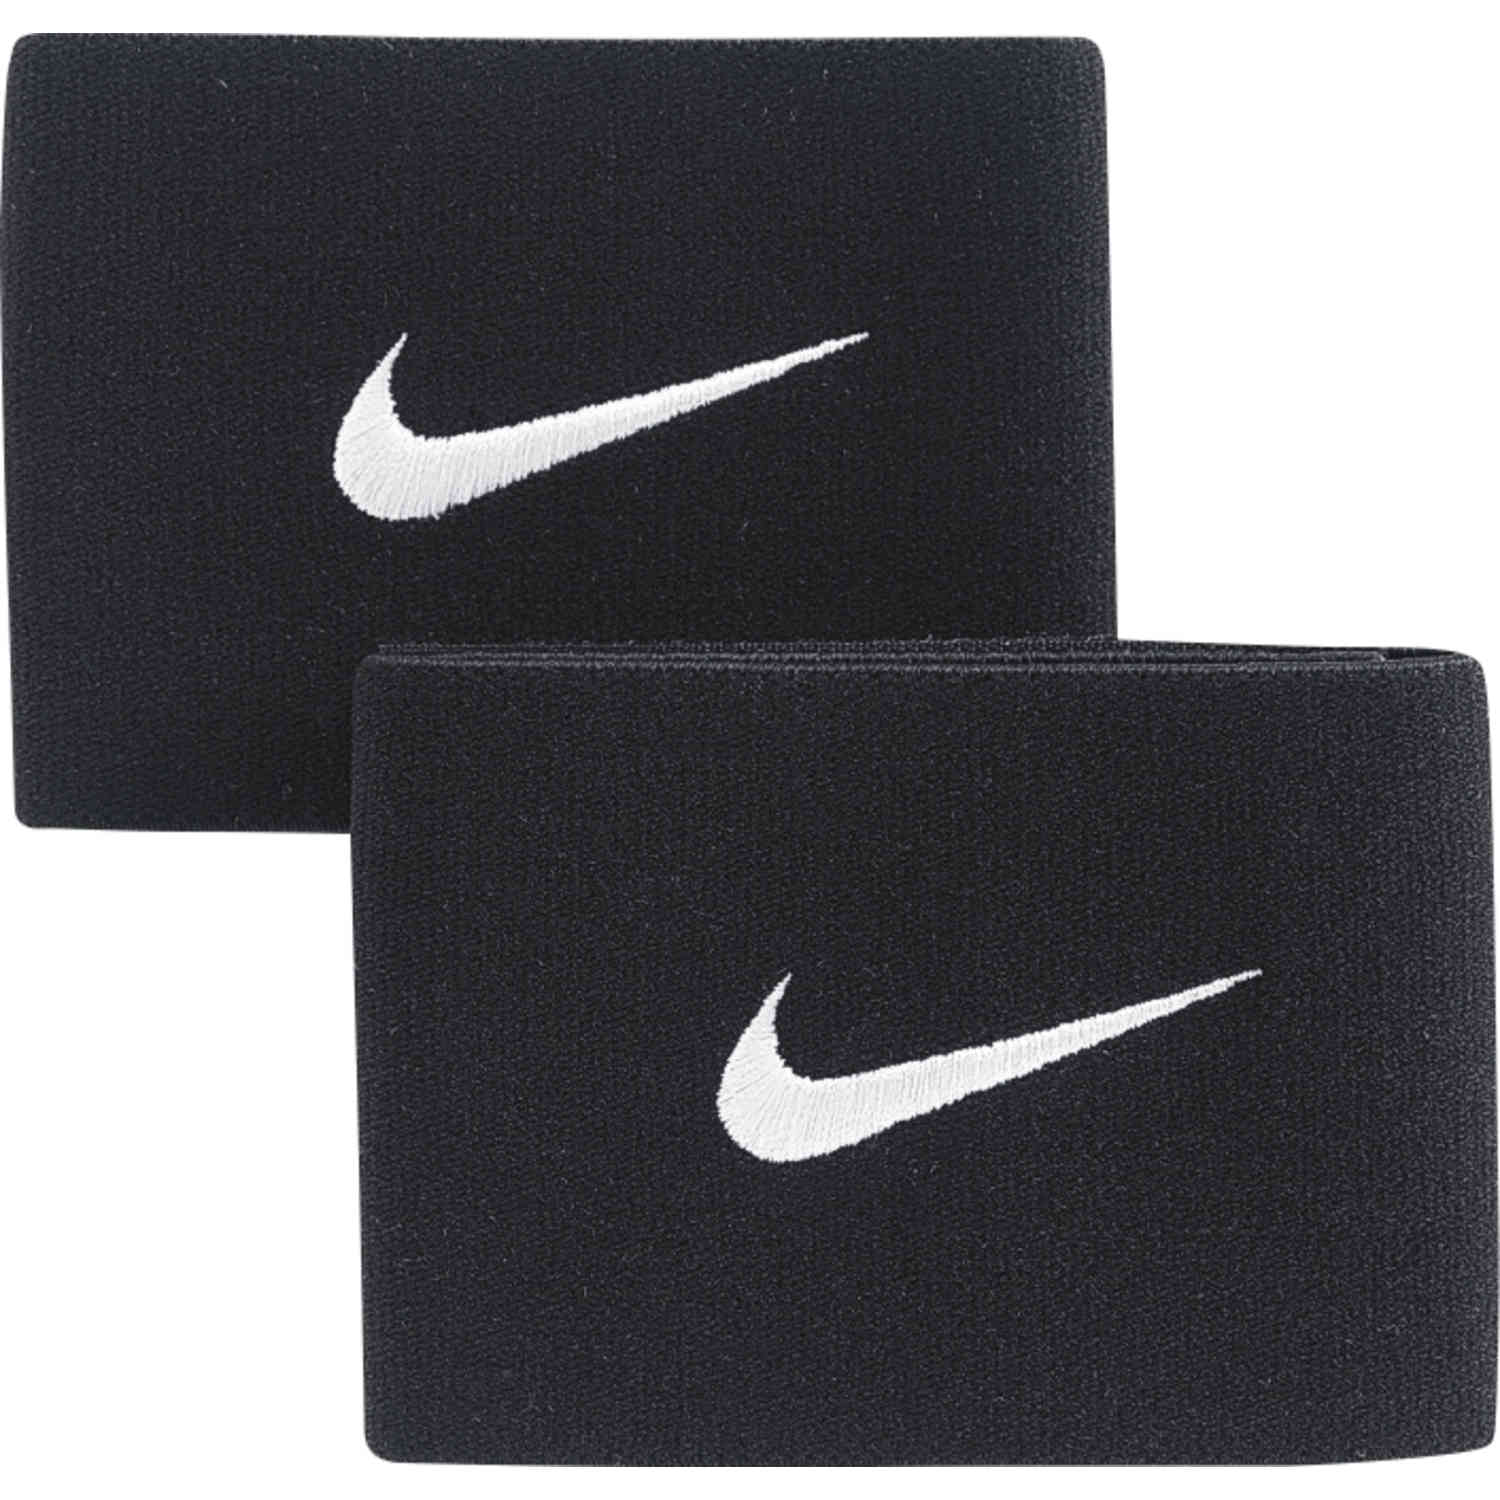 Nike Guard Stay Black - Nike Shin Guards a2213fd95700